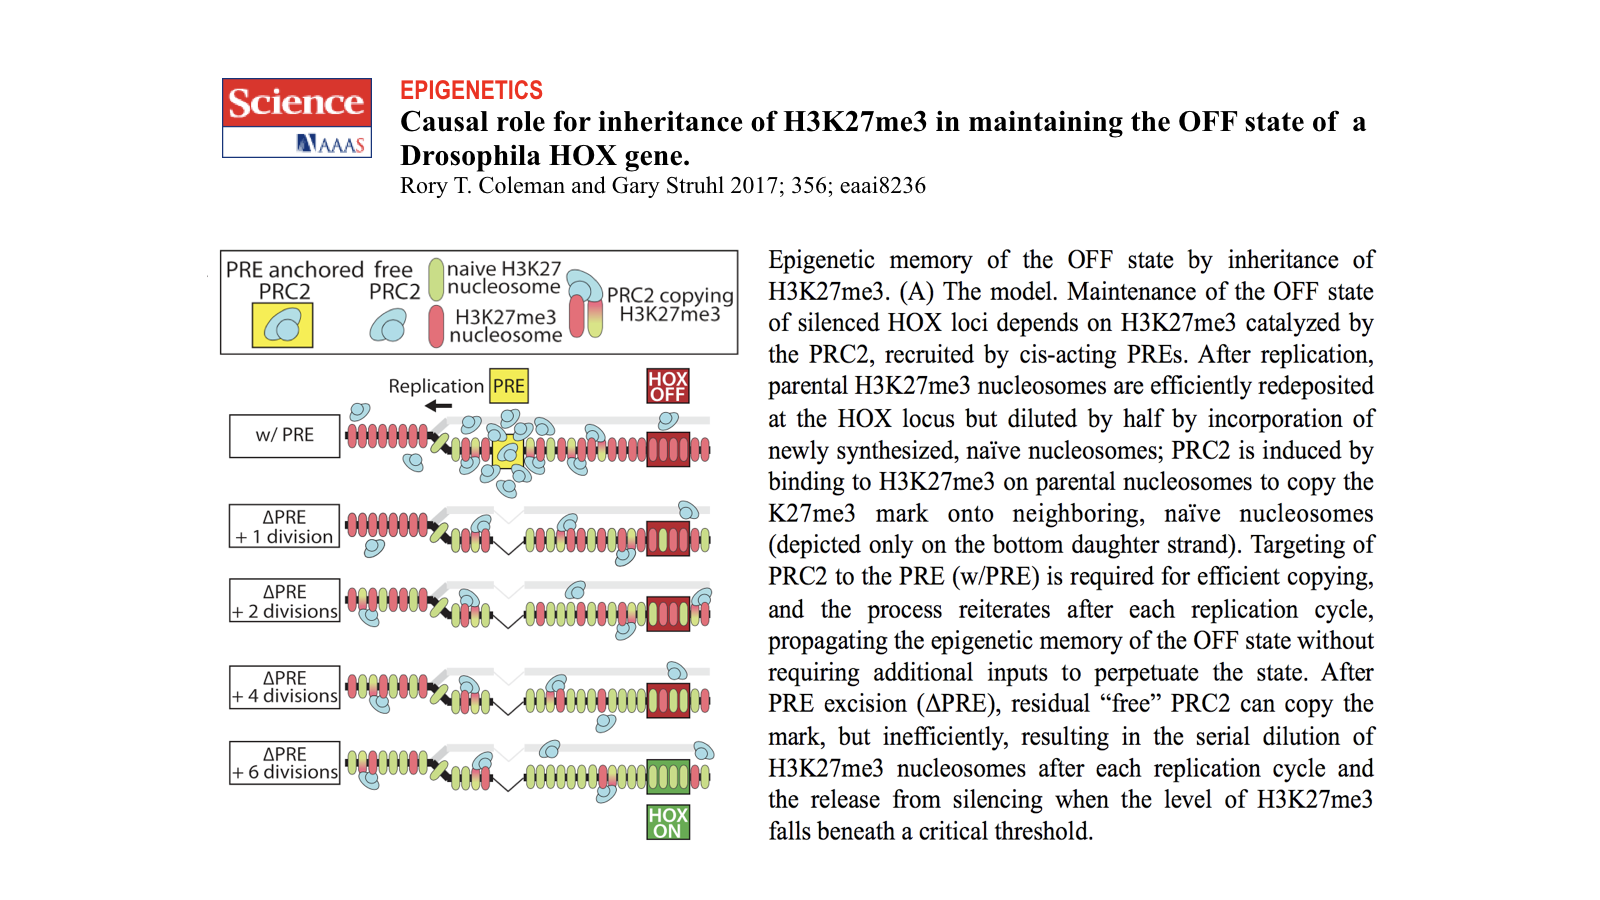 Causal role for inheritence of H3K27me3 in maintaining the OFF state of a Drosophila HOX gene